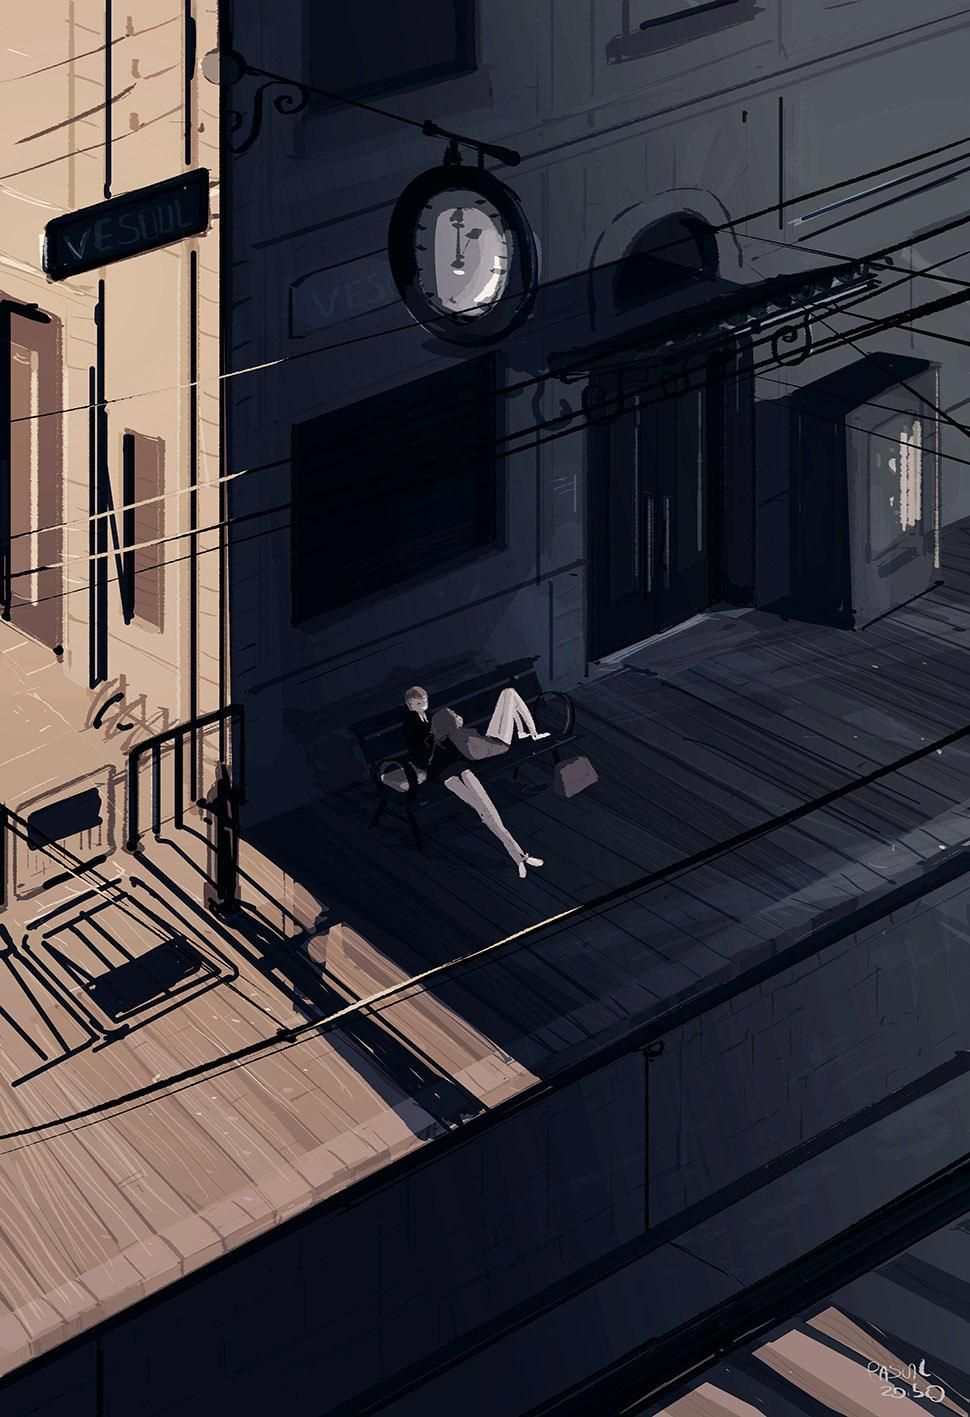 Pascal Campion on Twitter